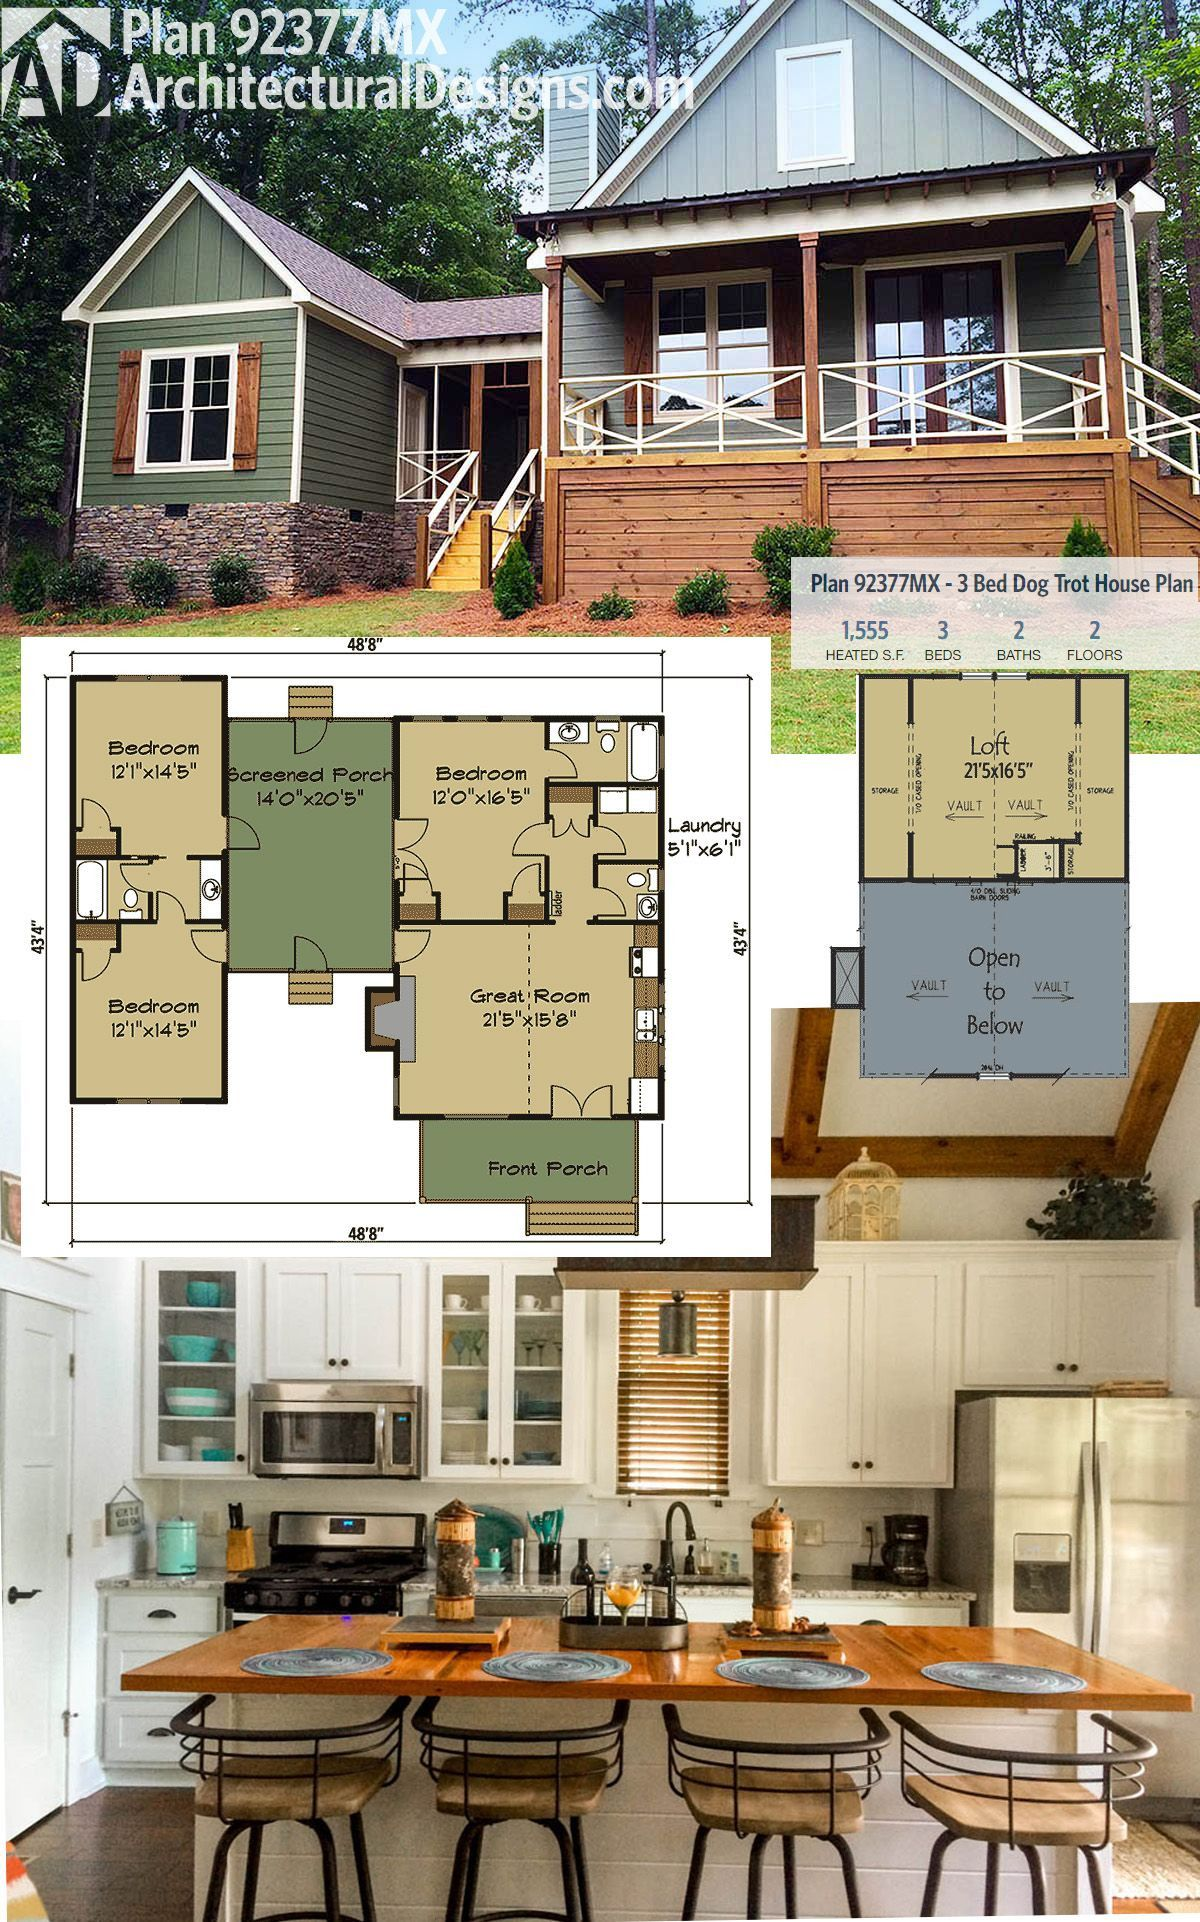 House With Porch Plans 2021 House Layouts Dog Trot House Plans House Blueprints